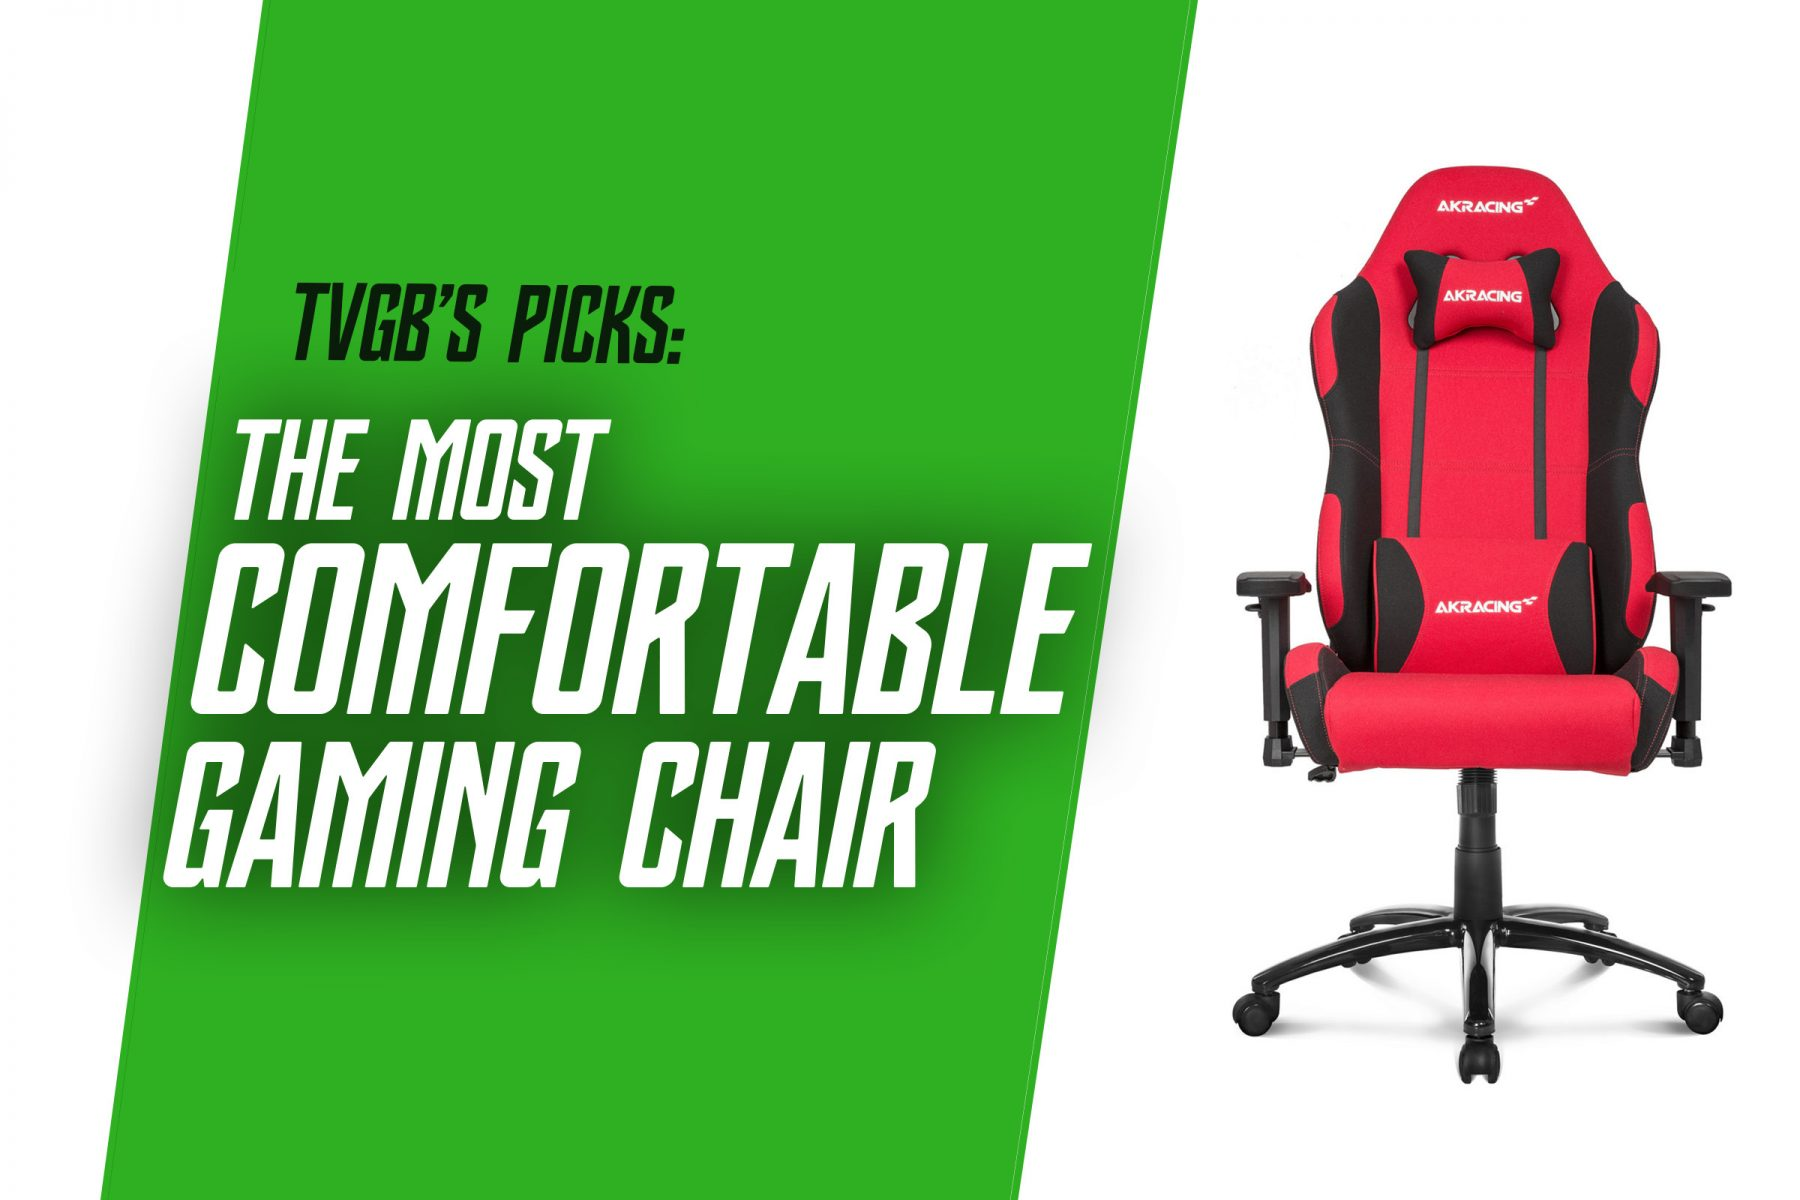 tvgb's pick for the most comfortable gaming chair